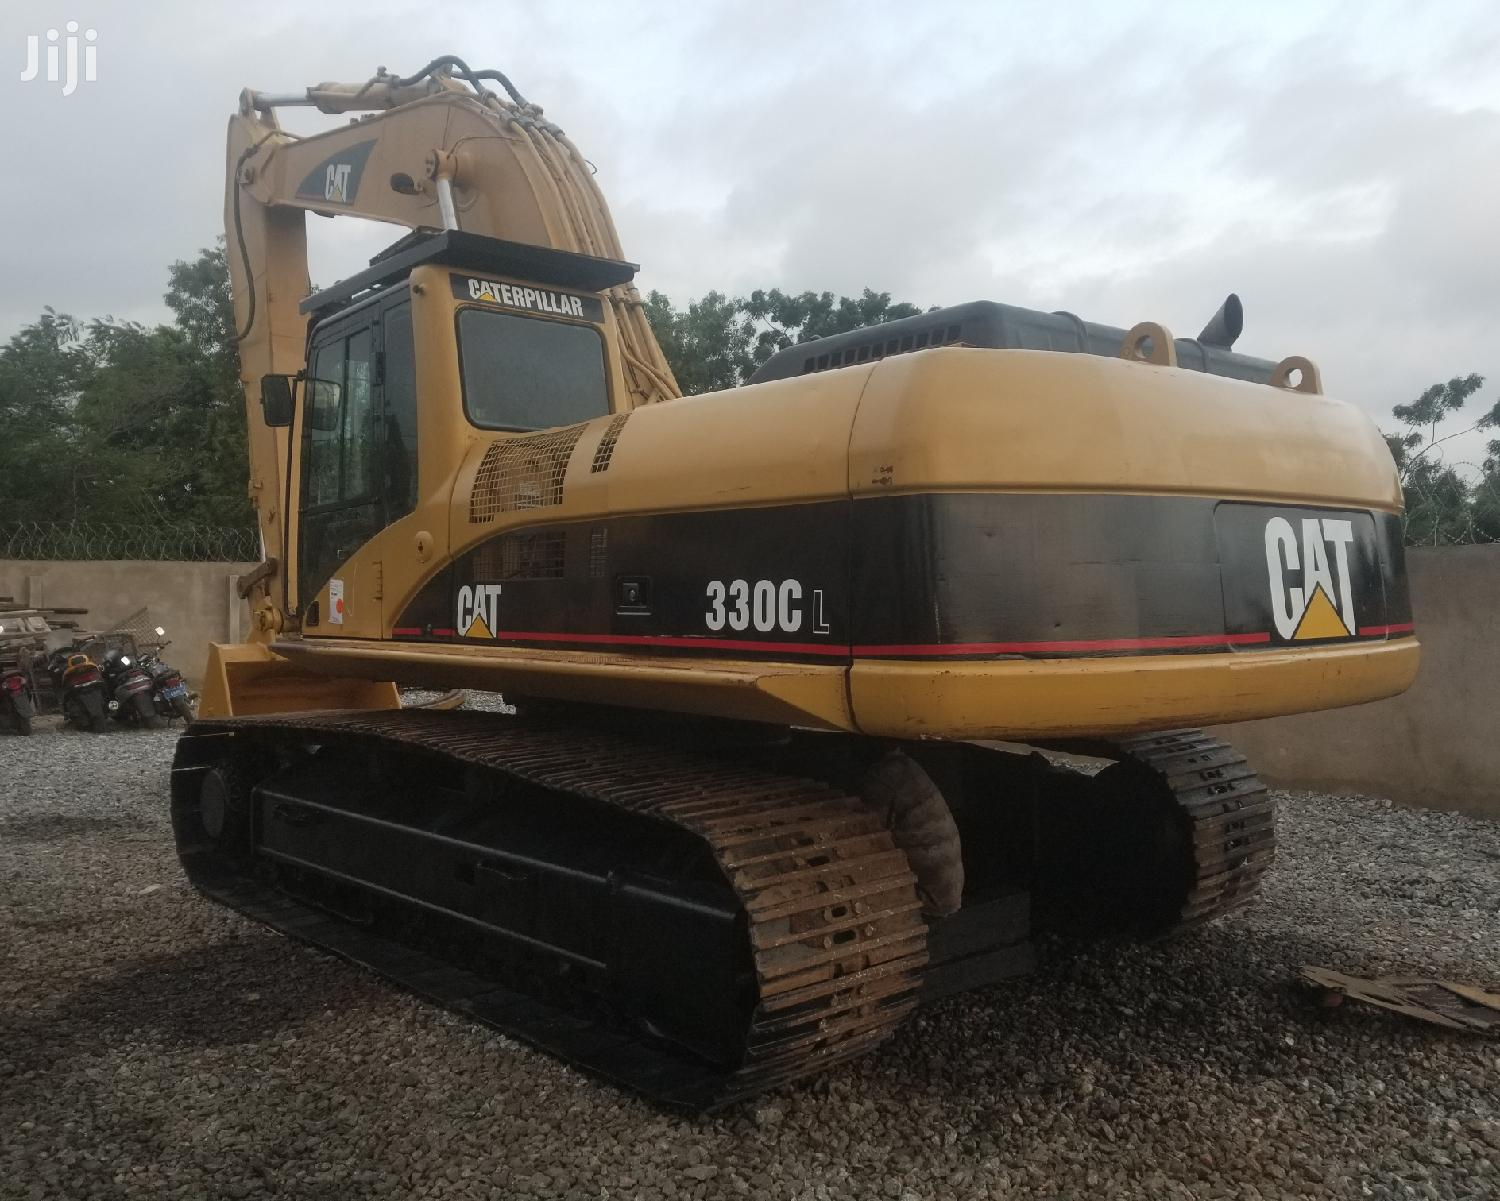 Caterpillar Excavators 330cl